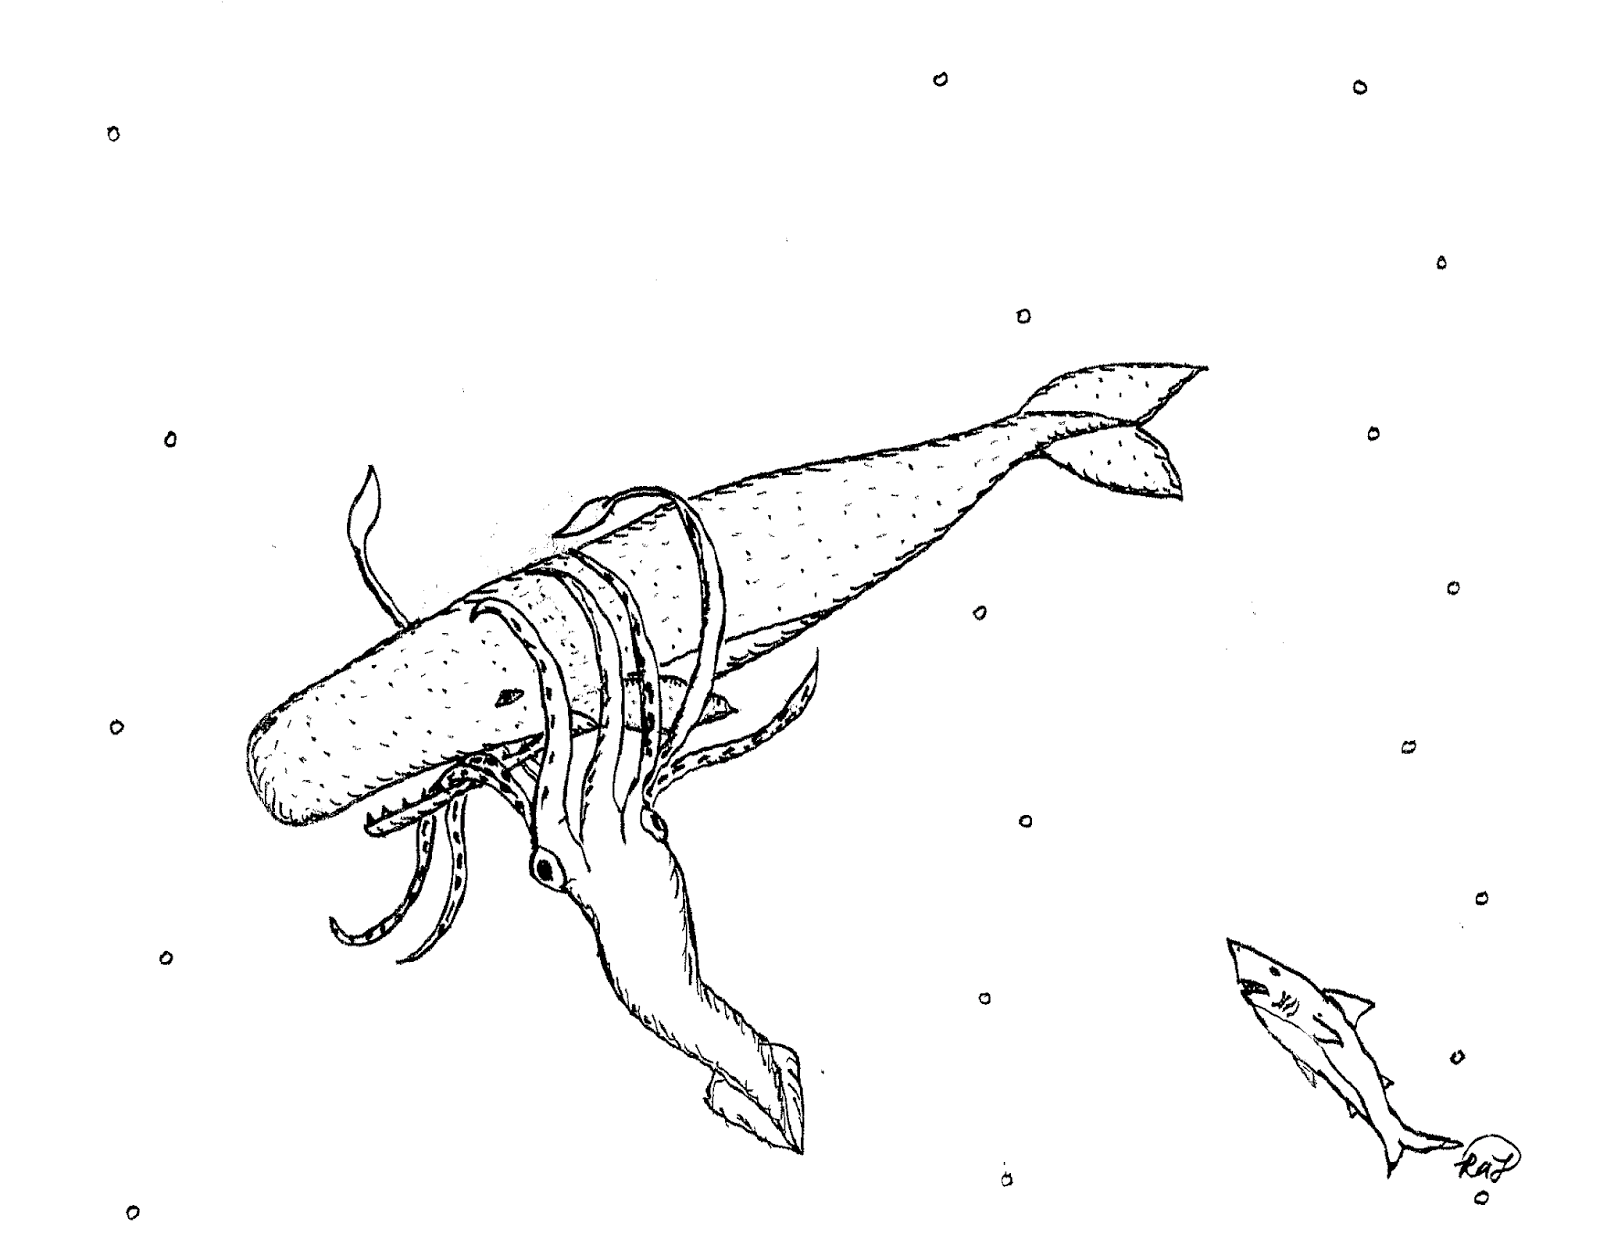 Robin 39 s great coloring pages sperm whale vs giant squid for Giant squid coloring page